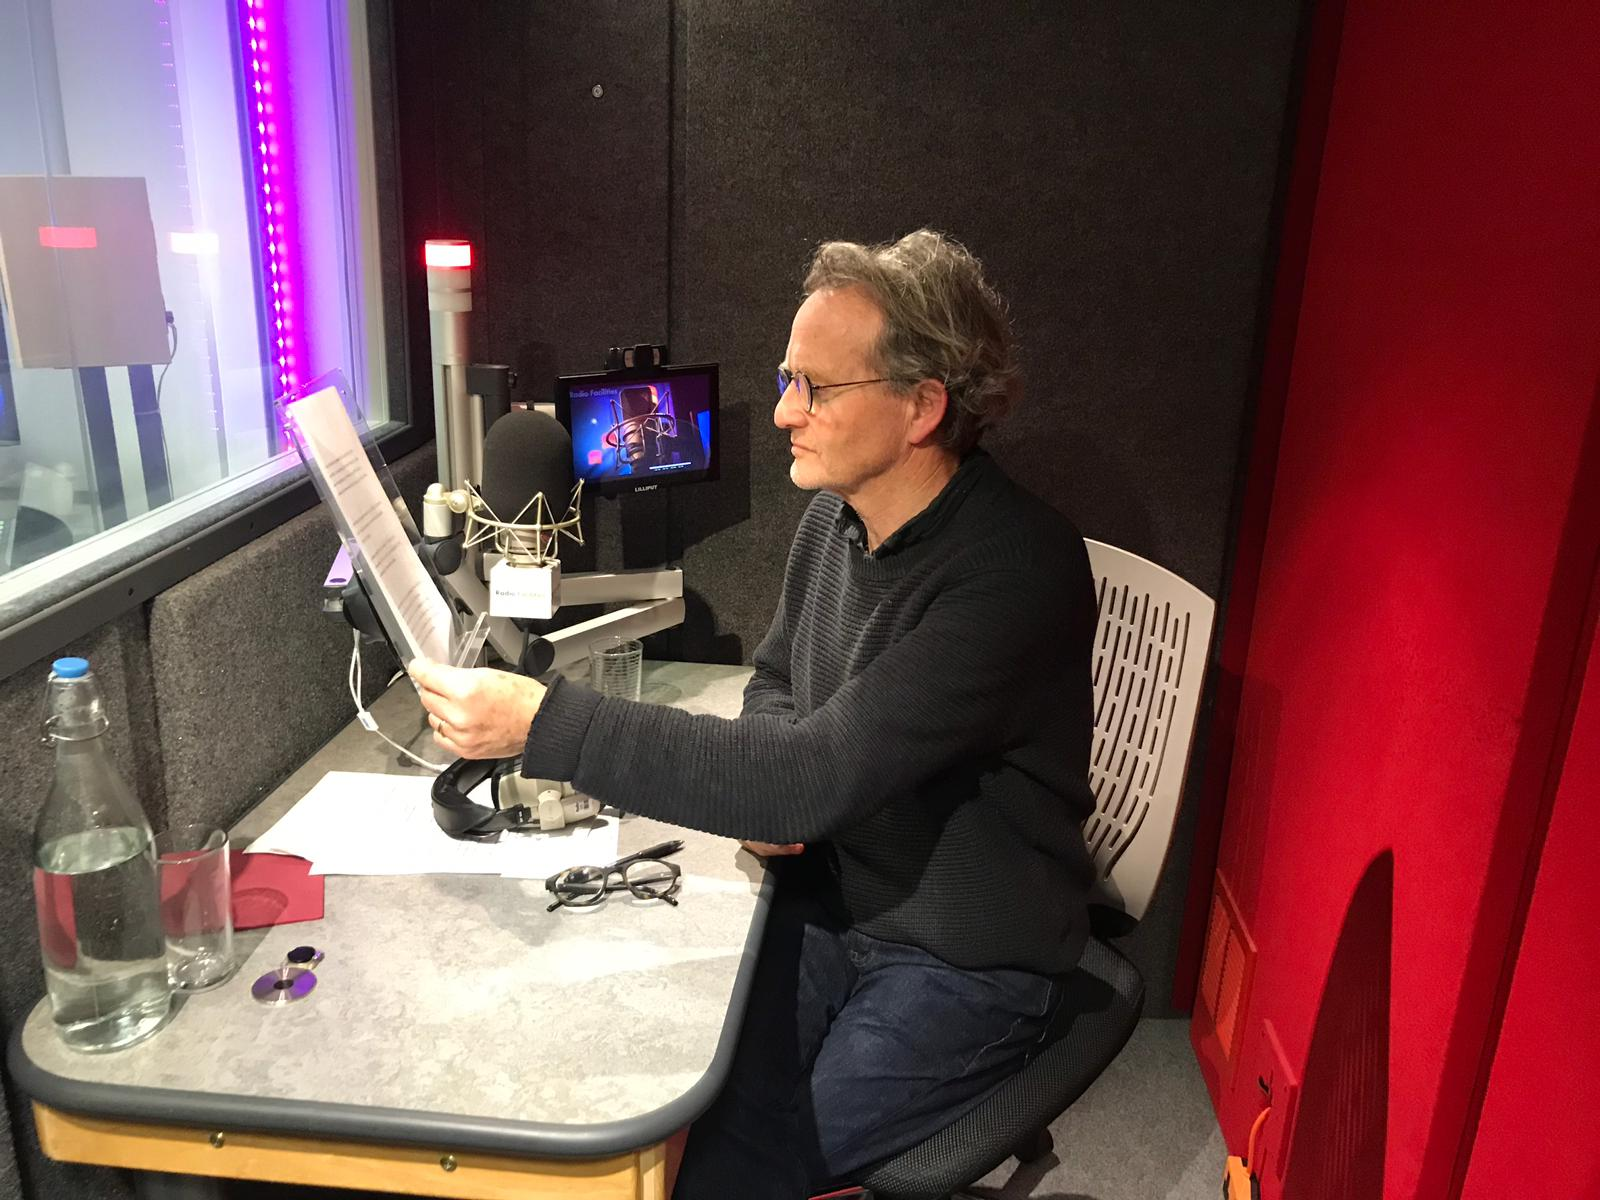 Anton Lesser from 'Game of Thrones' and Endeavour'